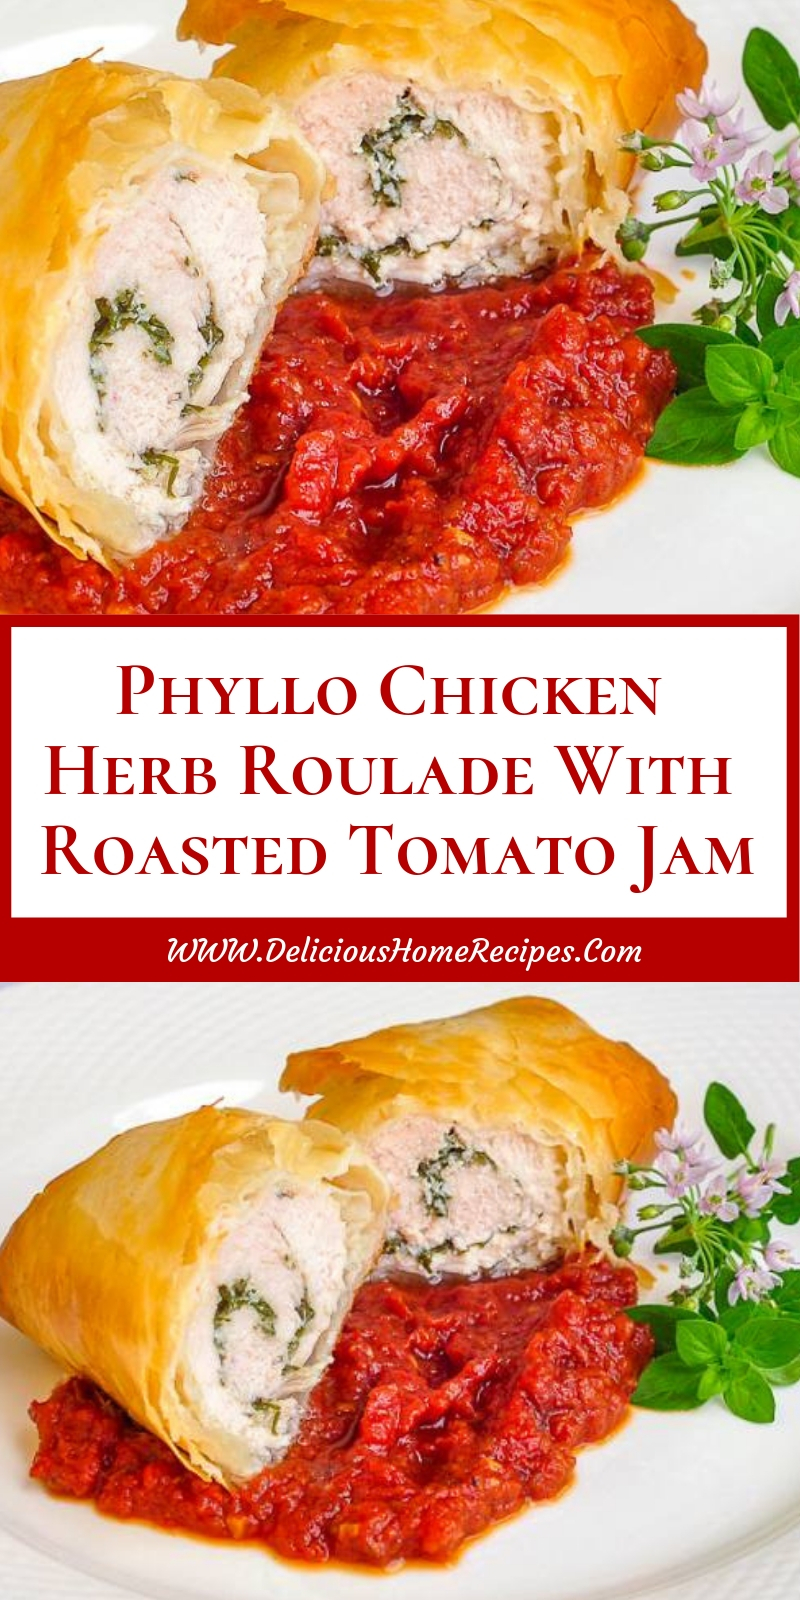 Phyllo Chicken Herb Roulade With Roasted Tomato Jam